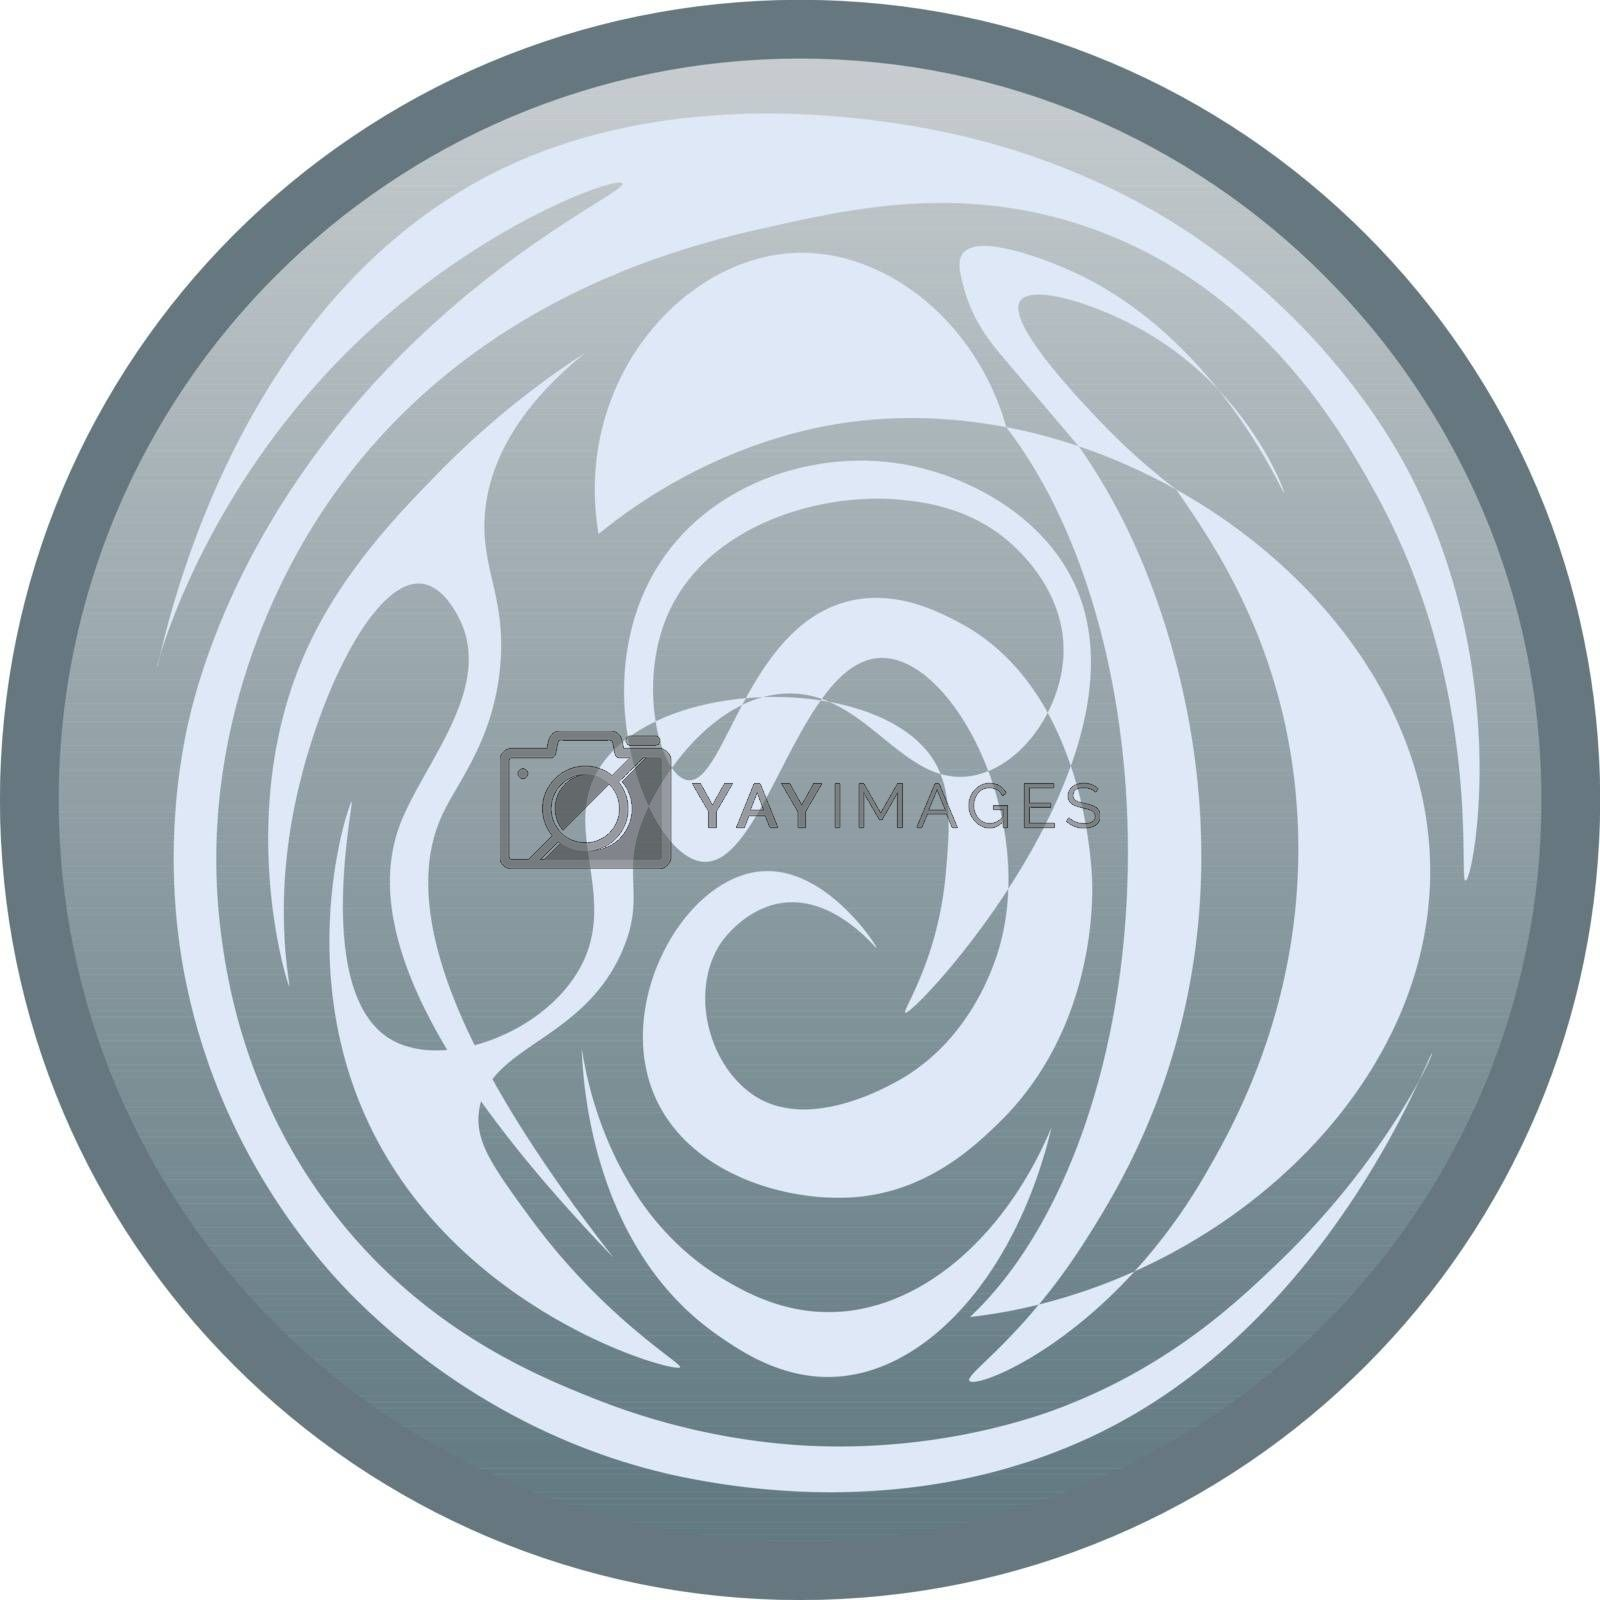 Circle with the grey pattern. fantasy symbol of the air and wind, icon, button or logo